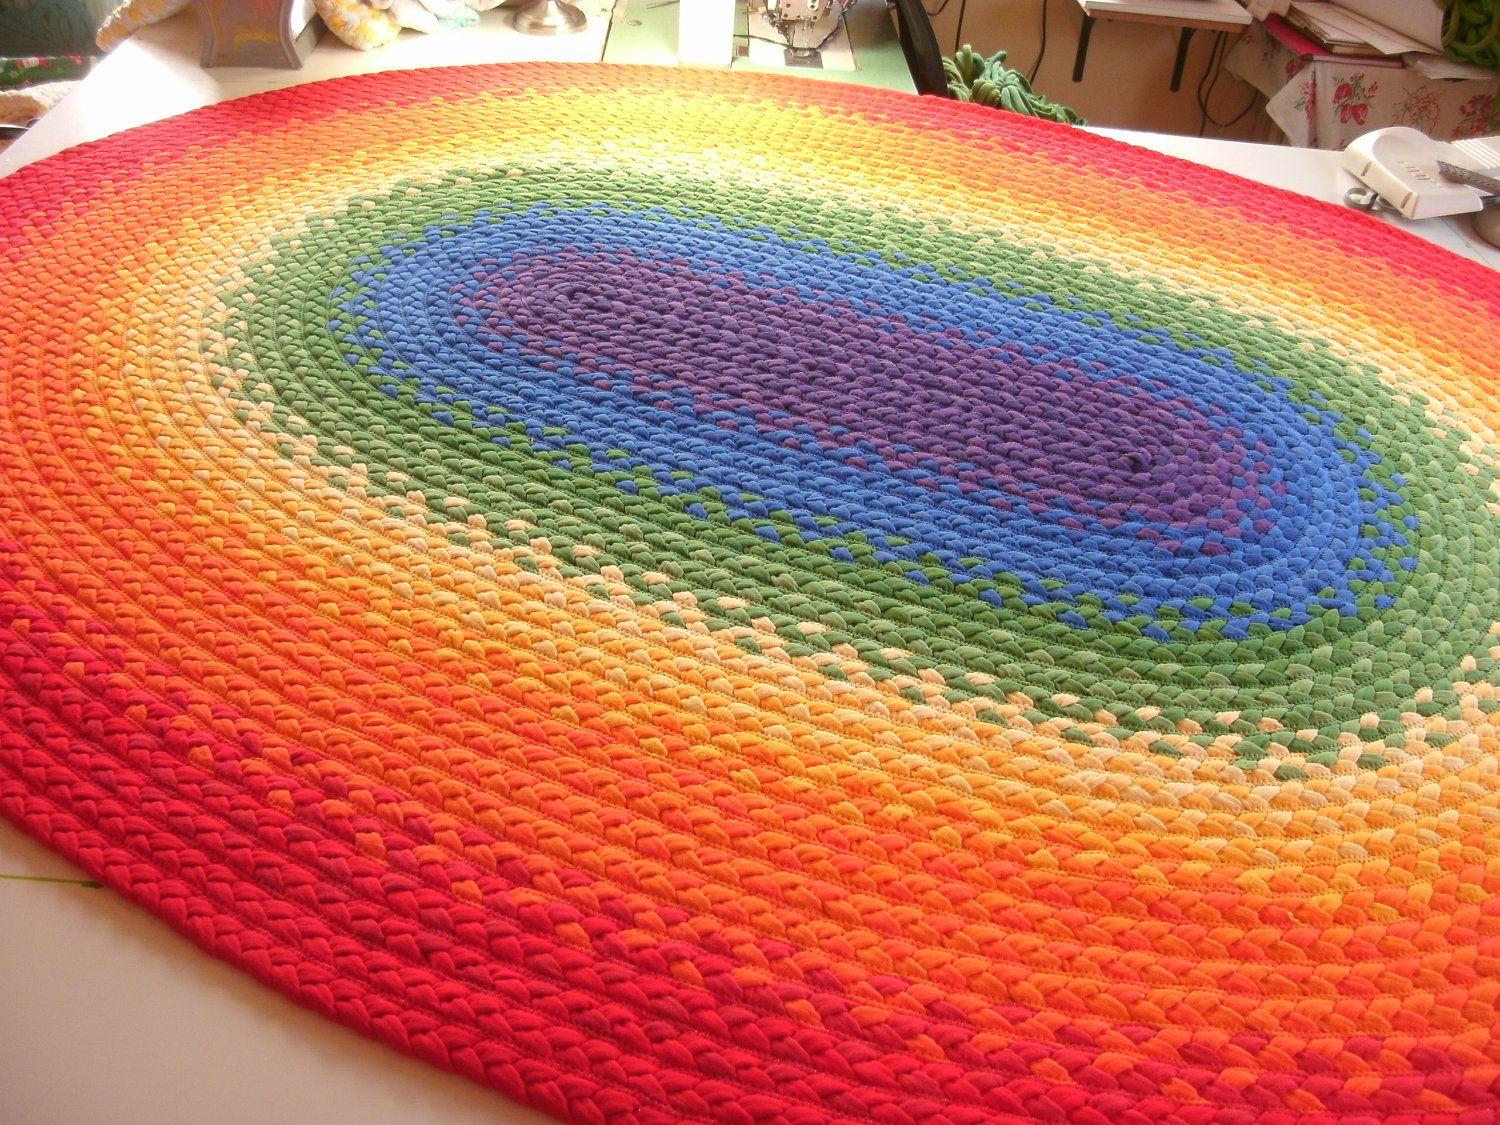 Area Rugs Amazing Plush Rainbow Rug Unique Design Braided Made From Organic Cotton And Reclaimed Extraordinary Innovative Ideas Funky Colored